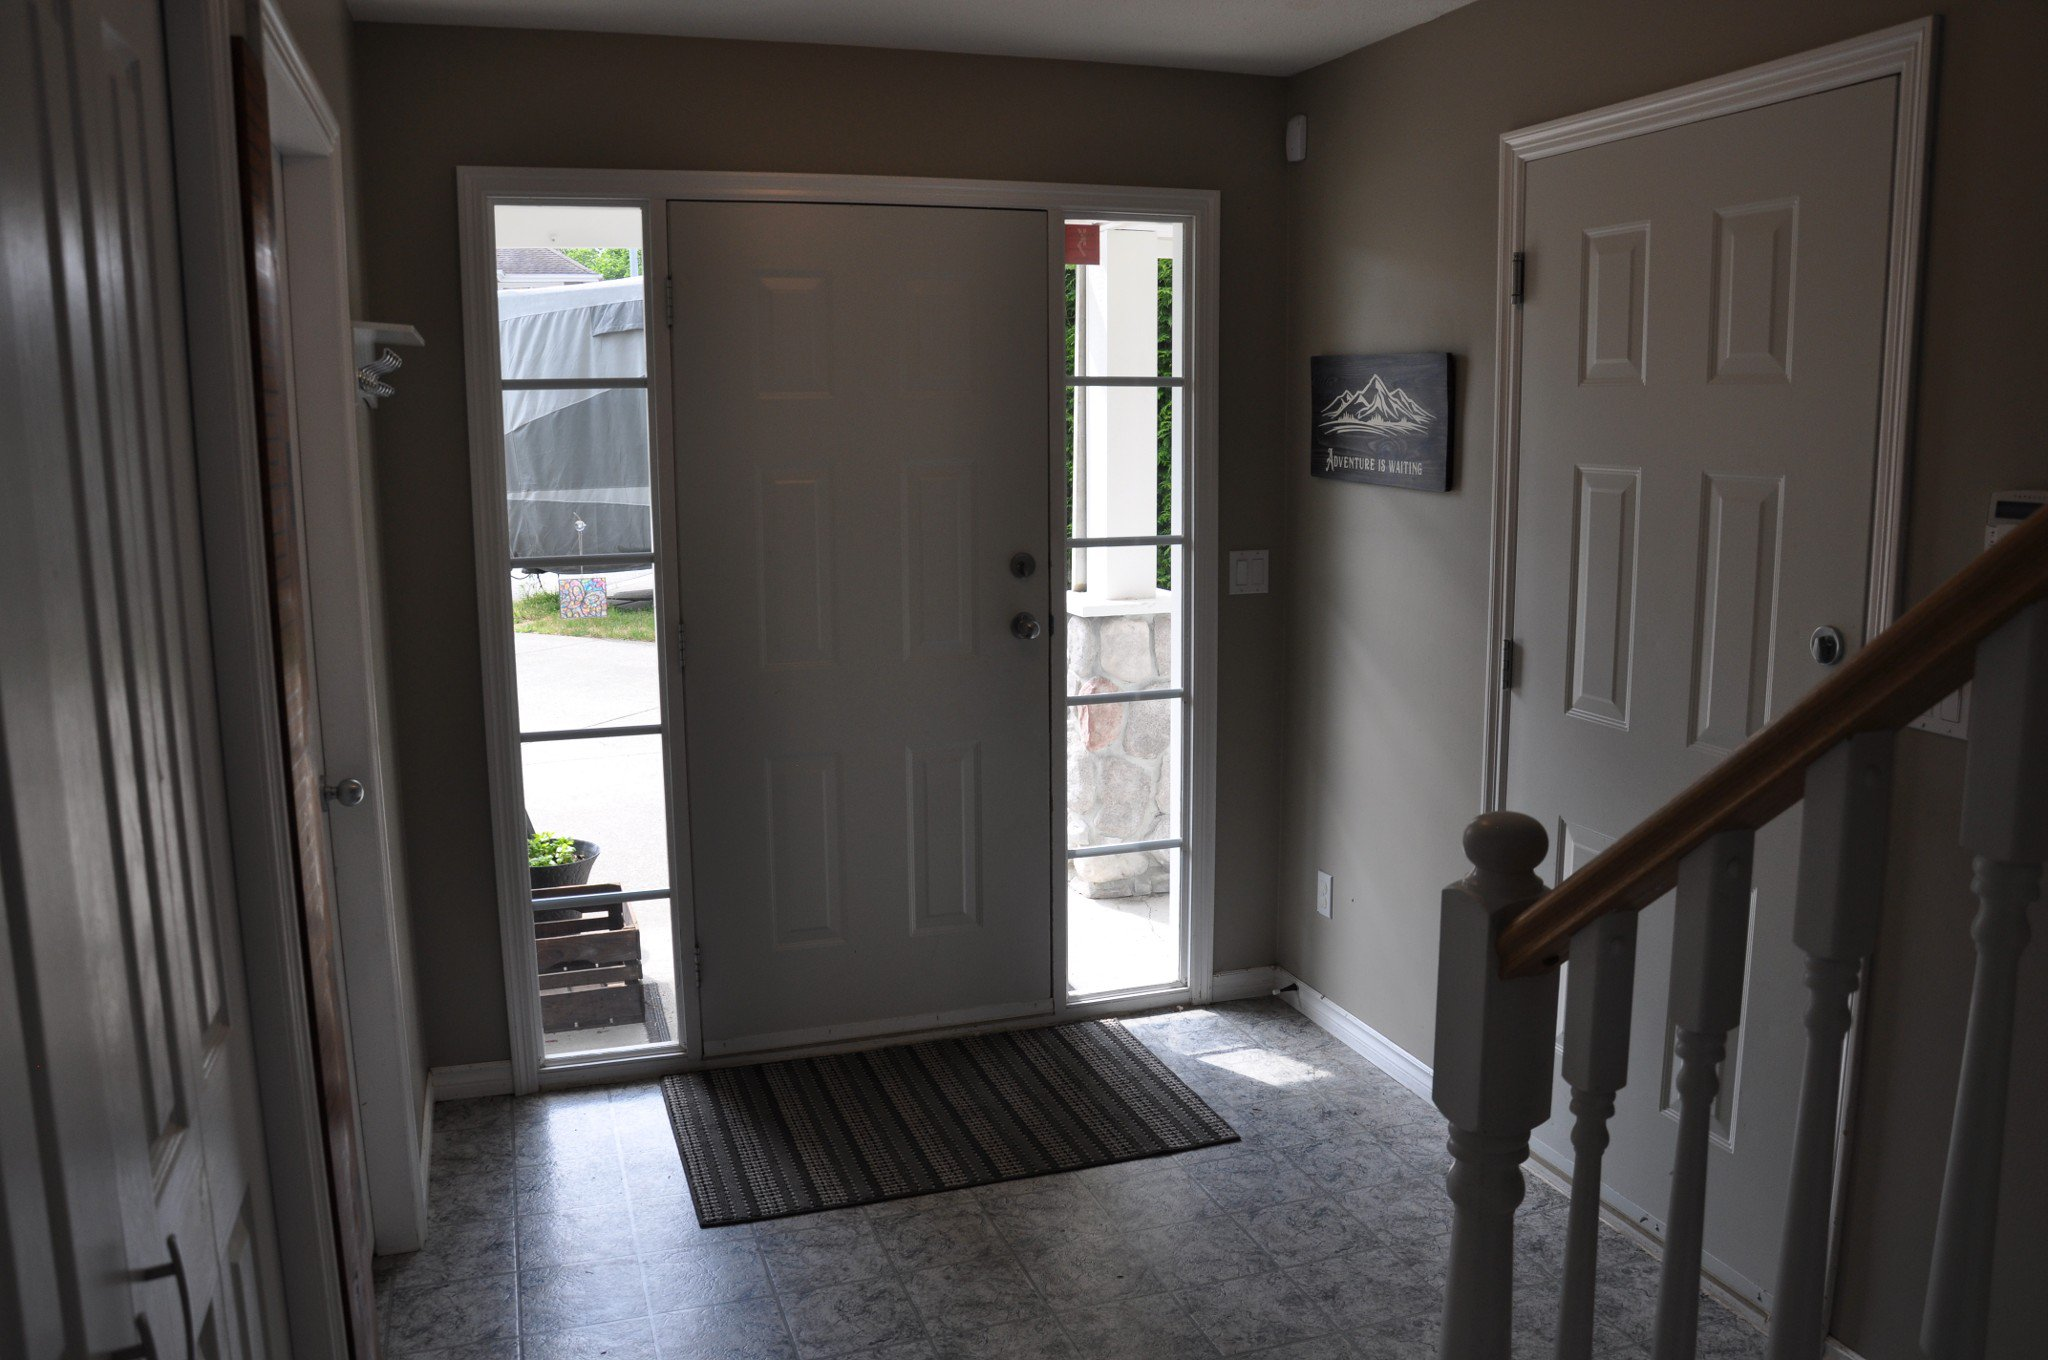 Photo 19: Photos: 4076 Channel St. in Abbotsford: Abbotsford East House for rent